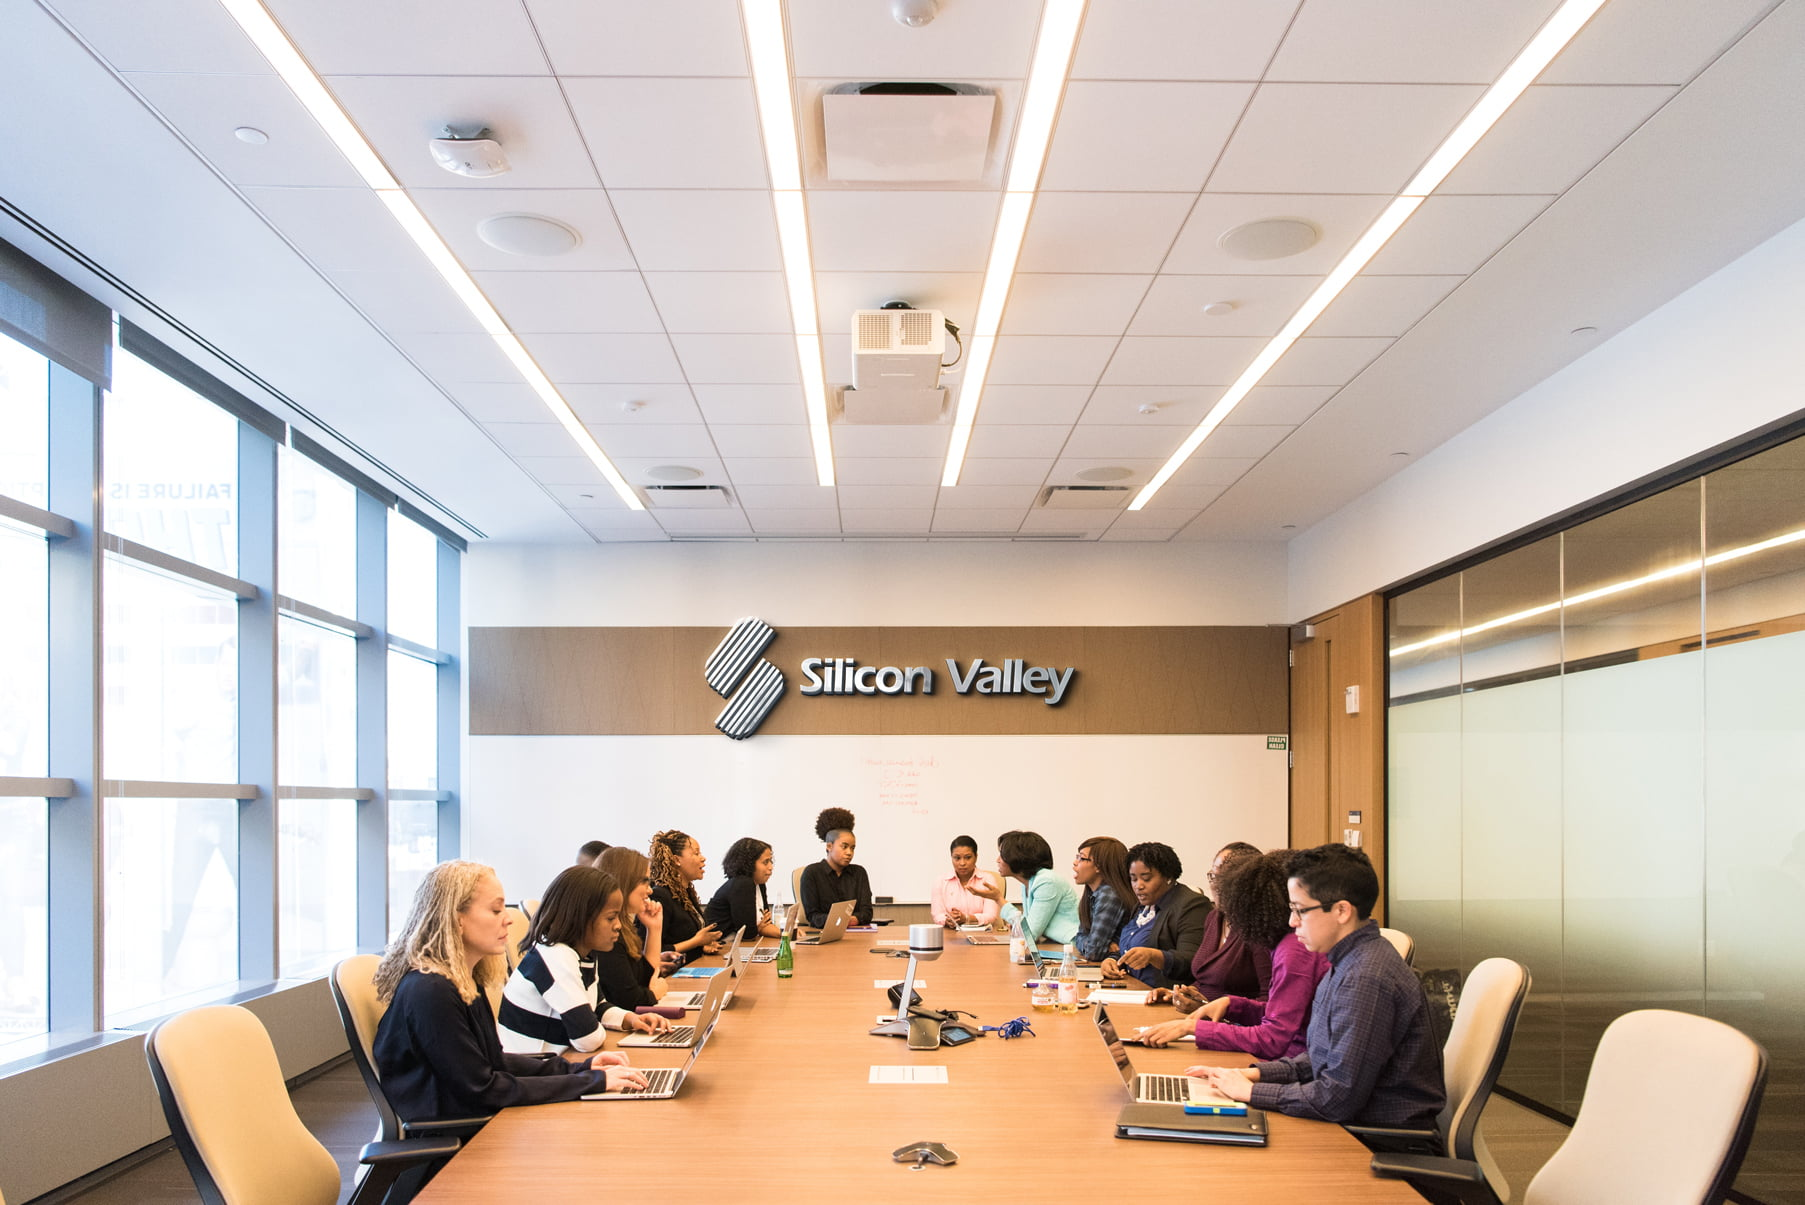 Silicon Valley Meeting Room Logo Mockup by GraphicsFamily